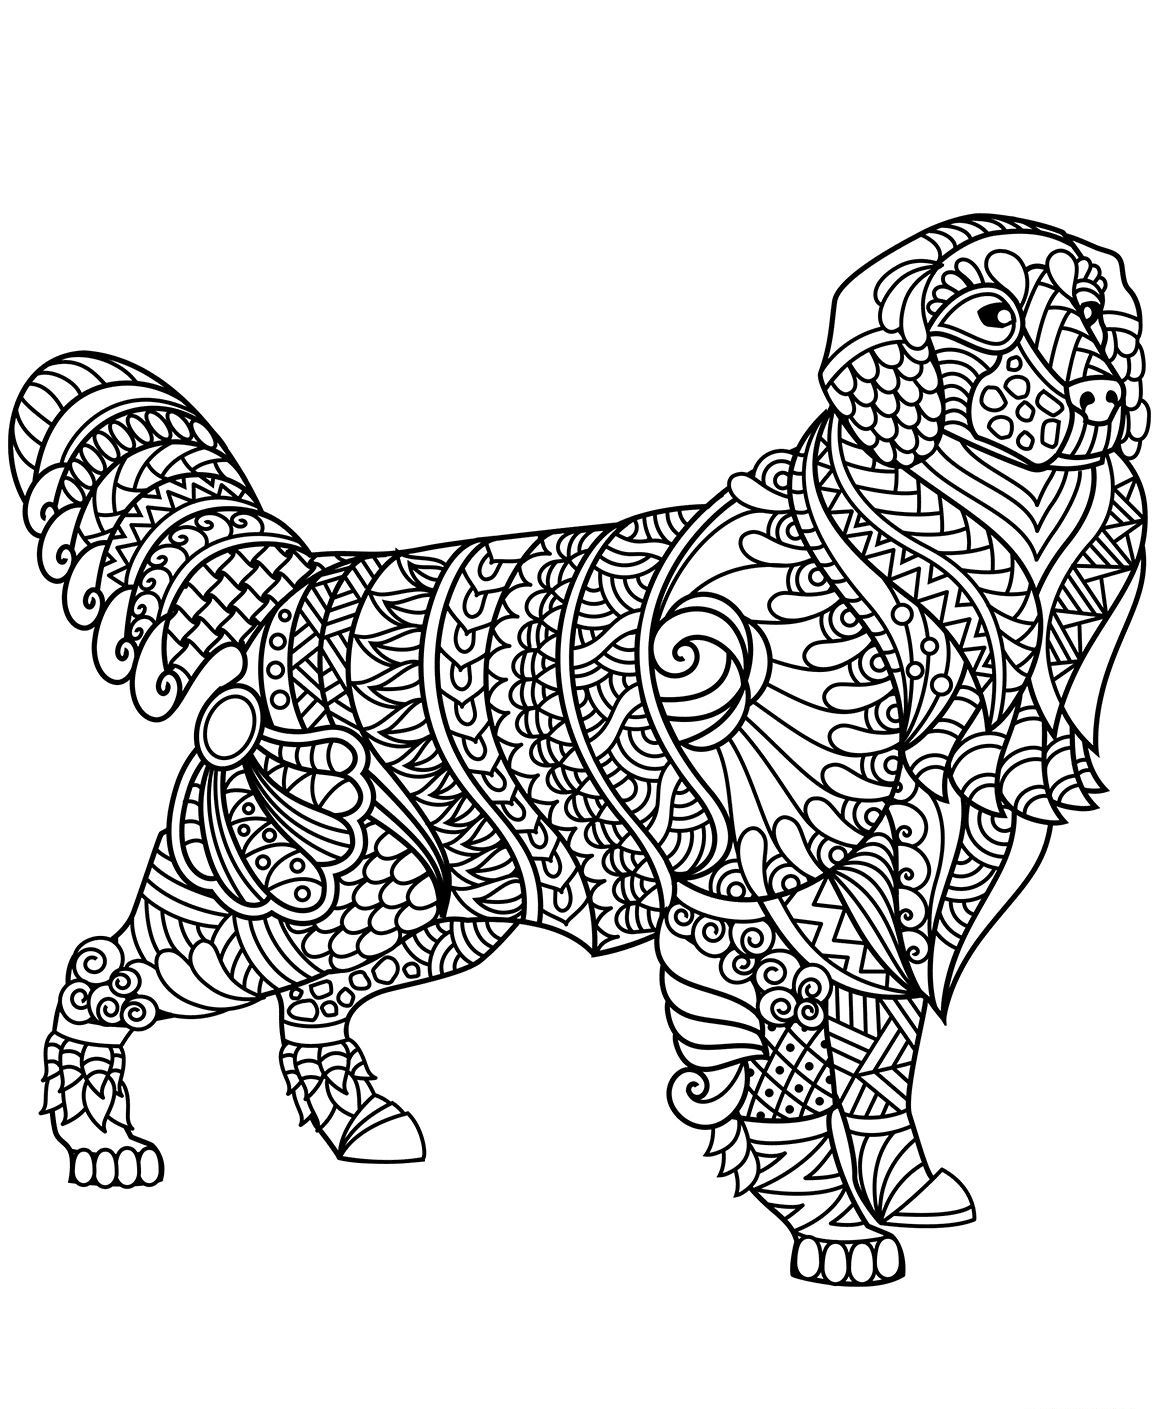 Relicaaa I Will Send You 160 Printable Coloring Pages Of Mandalas Animals Flowers For 15 On Fiverr Com In 2020 Dog Coloring Page Animal Coloring Pages Dog Coloring Book